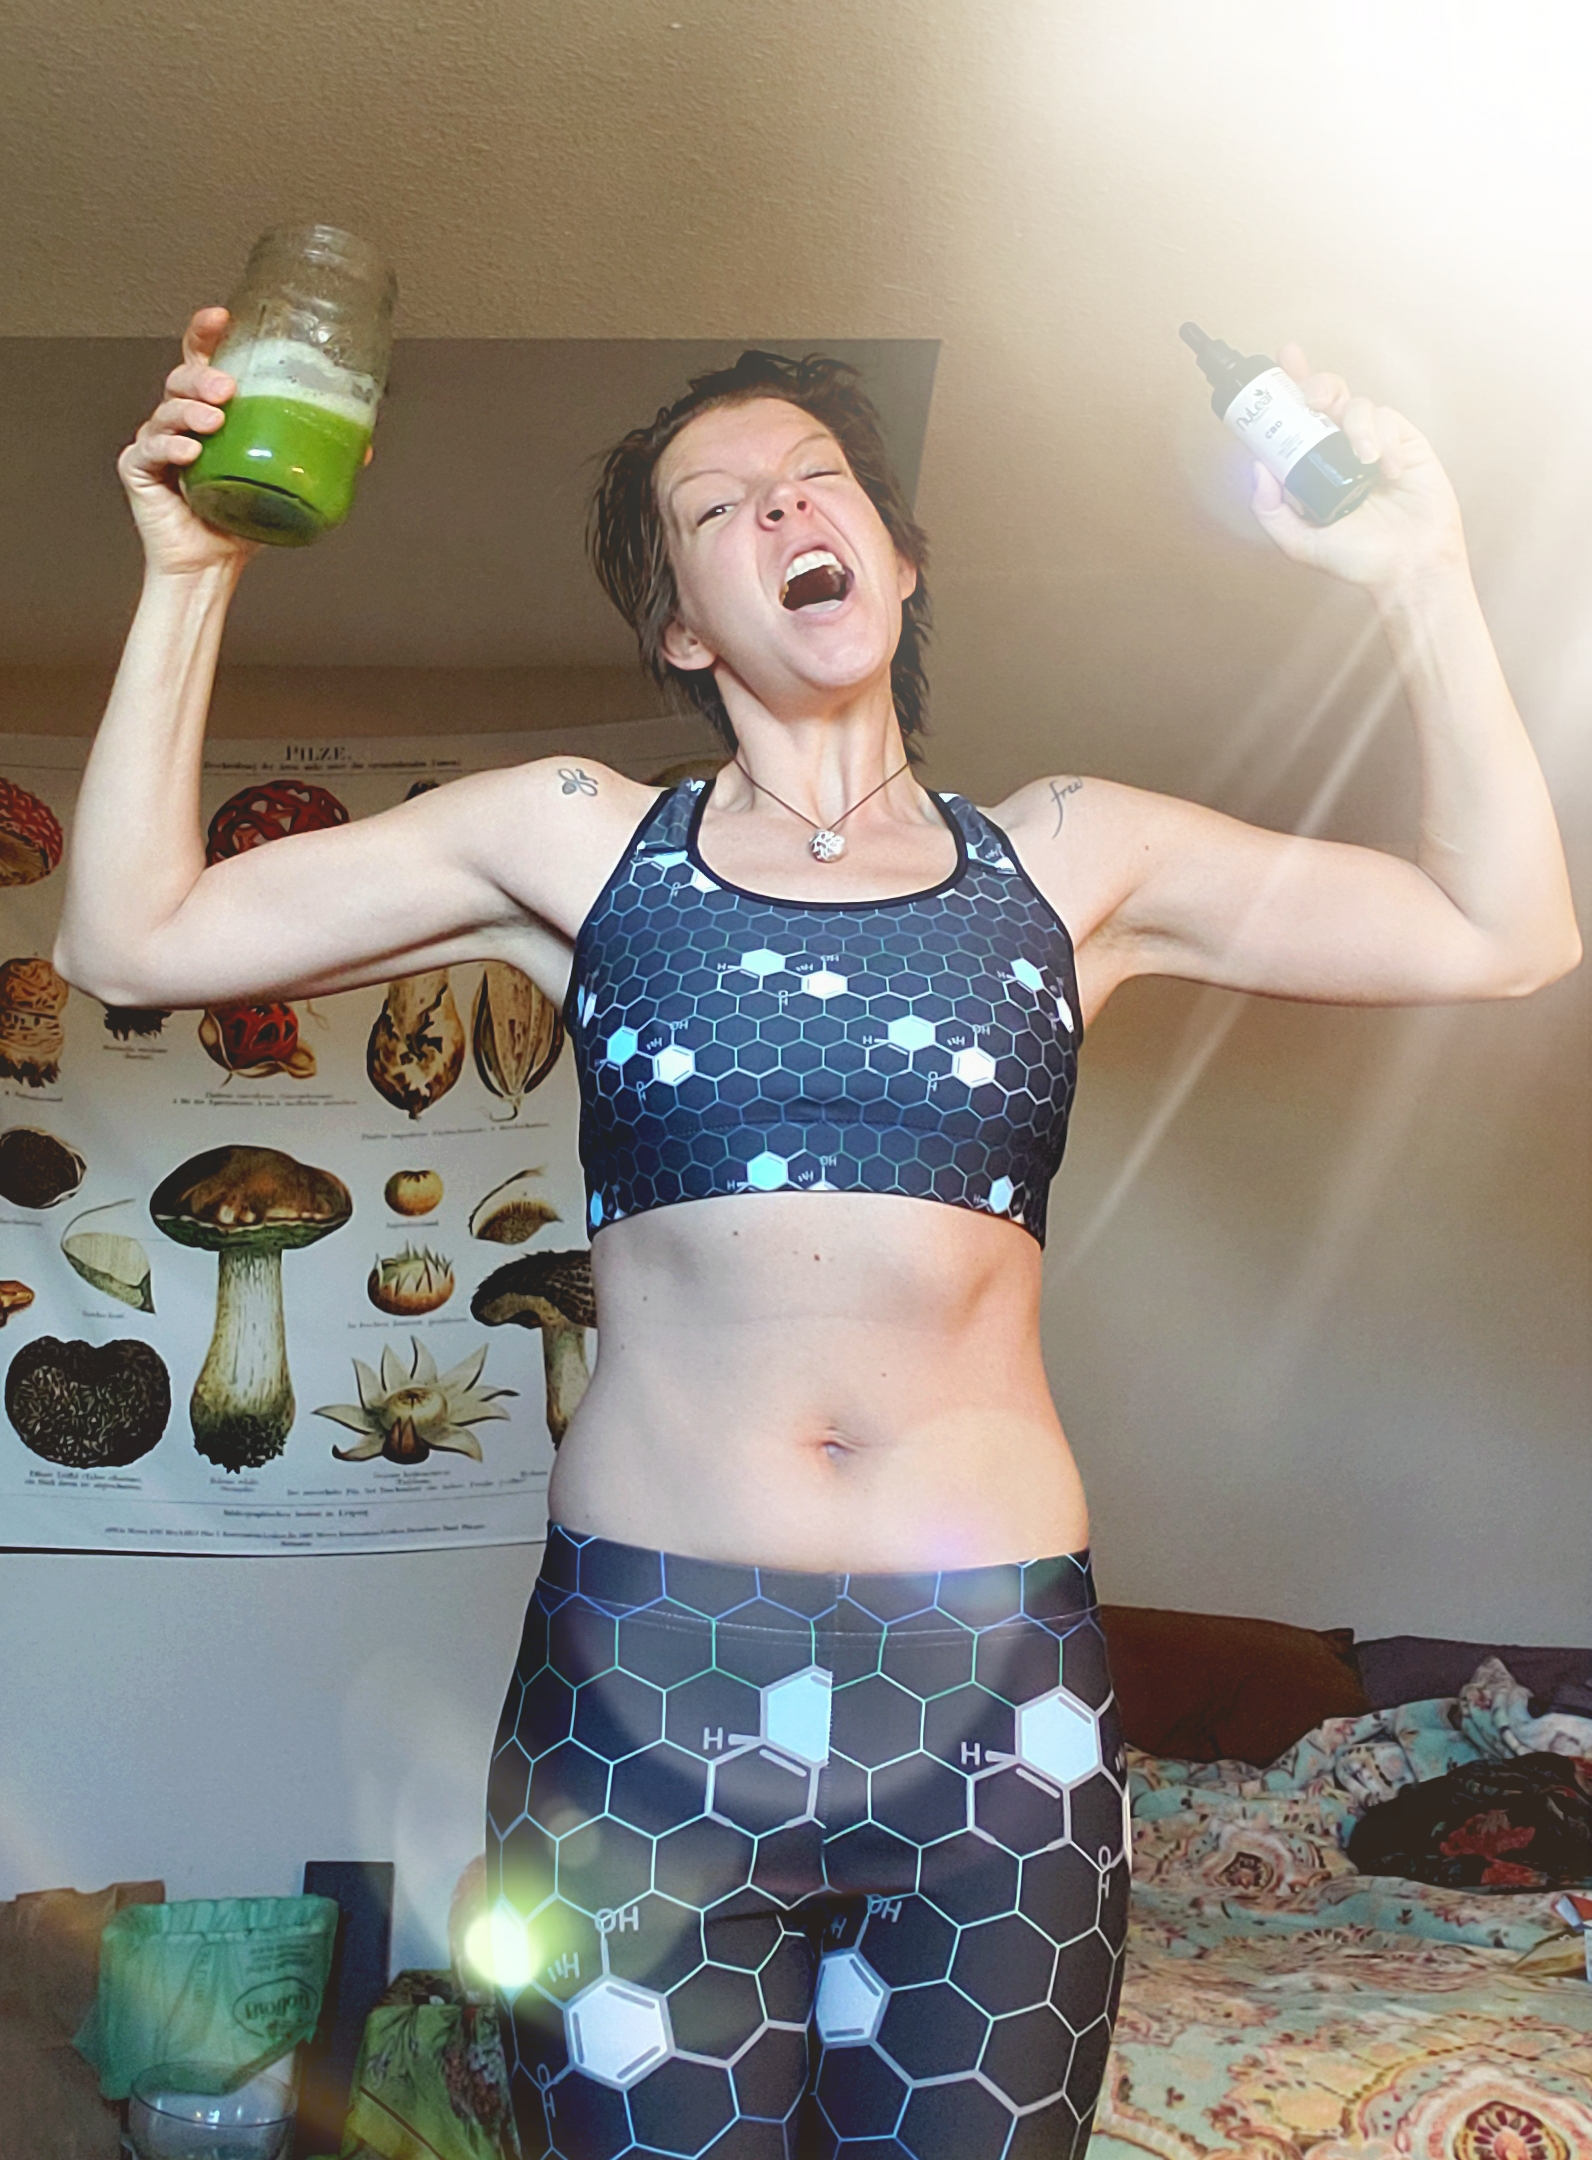 CBD and Celery Juice… Popeye ain't got nothing on me!